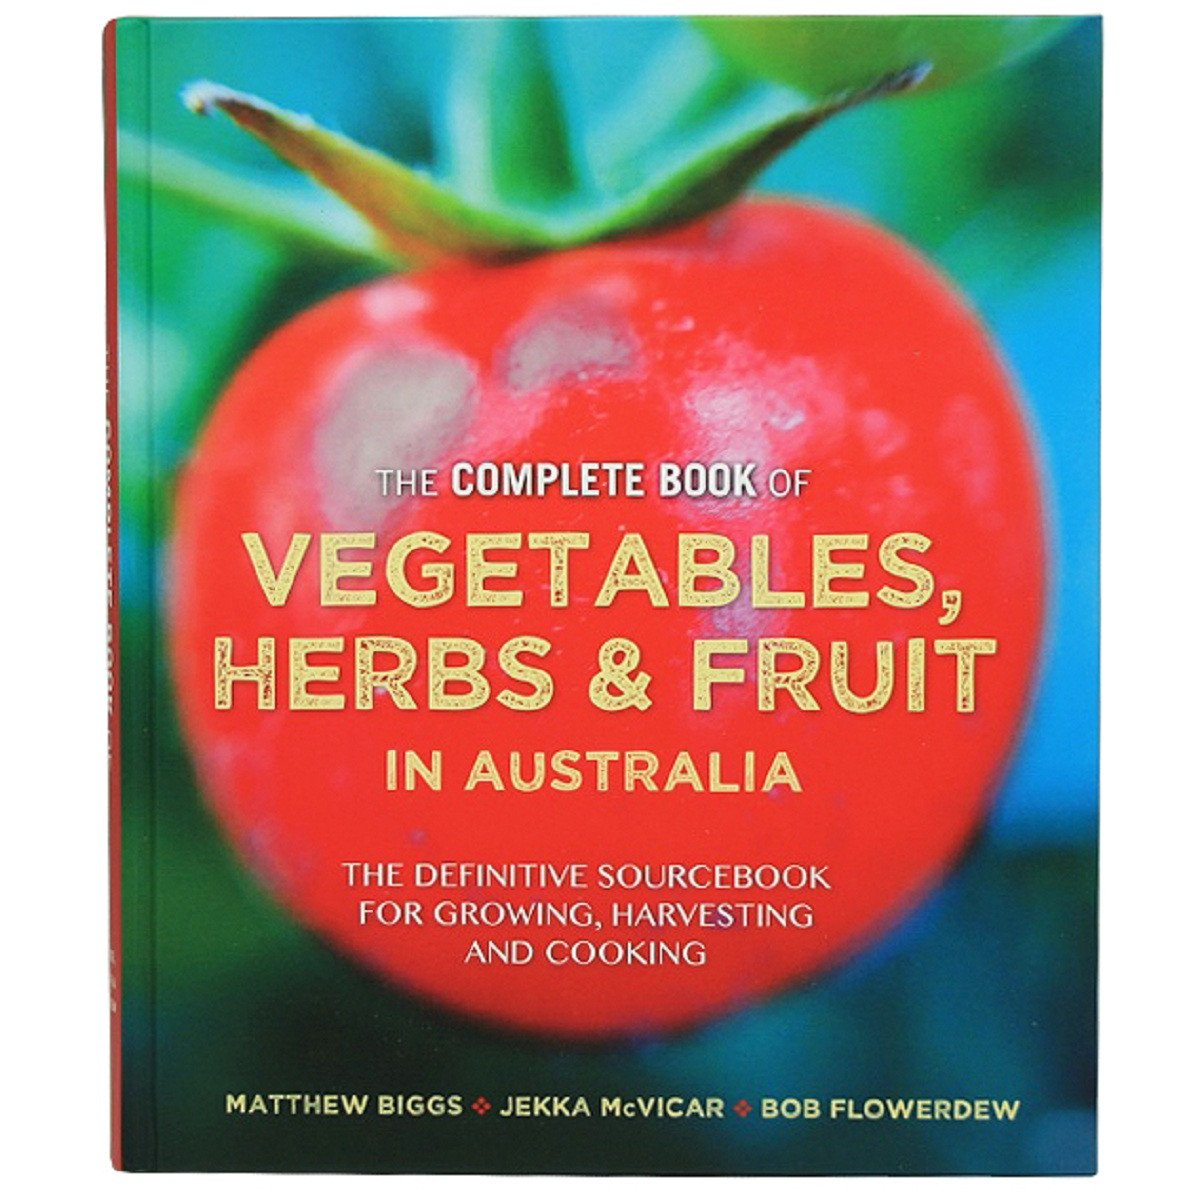 The Complete Book of Vegetables, Herb and Fruit in Australia: the Definitive Sourcebook for Growing, Harvesting and Cooking